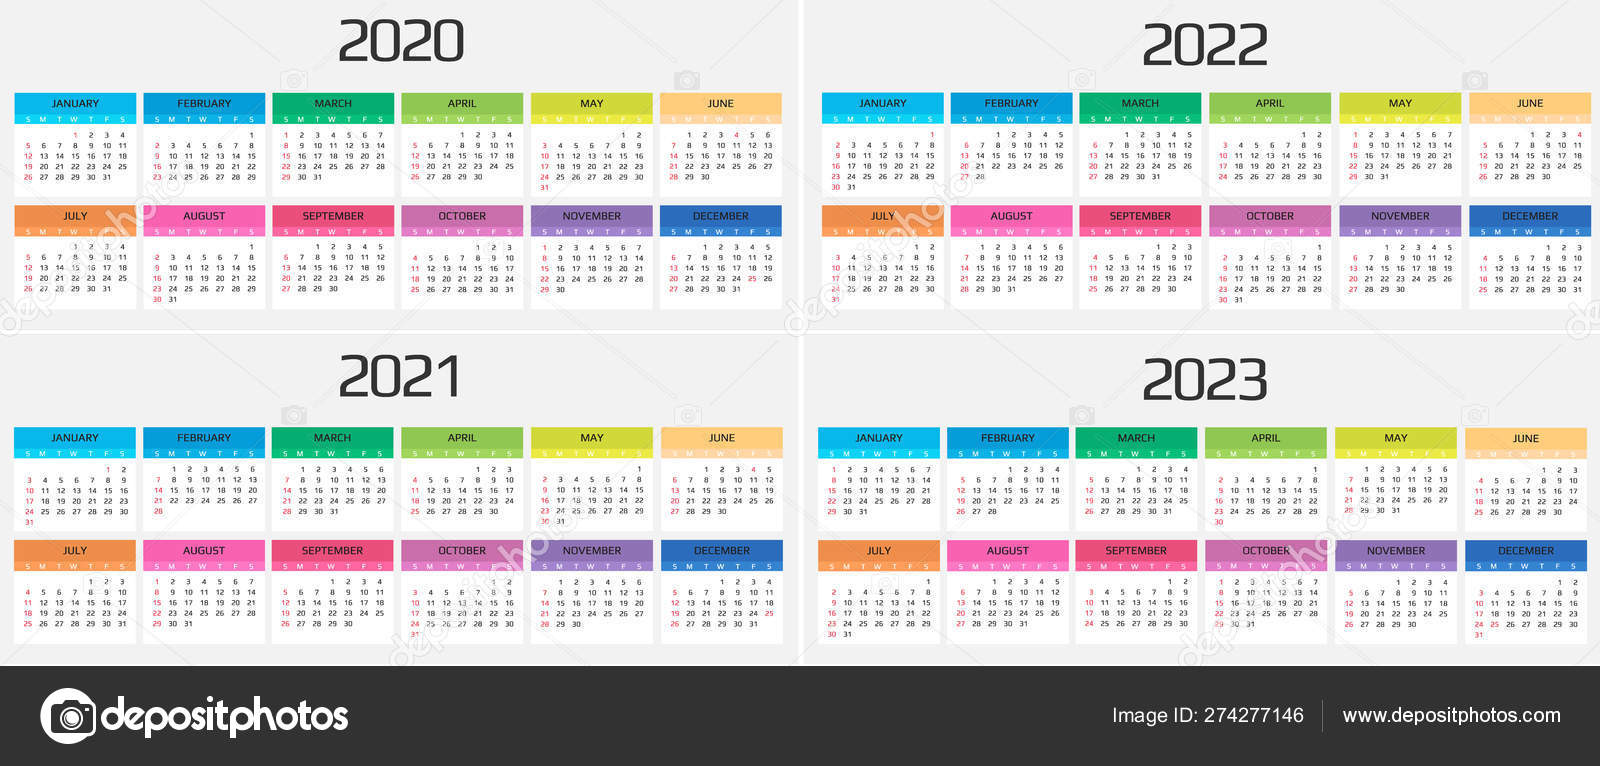 2022 Events Calendar.Calendar 2020 2021 2022 2023 Template 12 Months Include Holiday Event Week Starts Sunday Vector Image By C Anasteisha Vector Stock 274277146